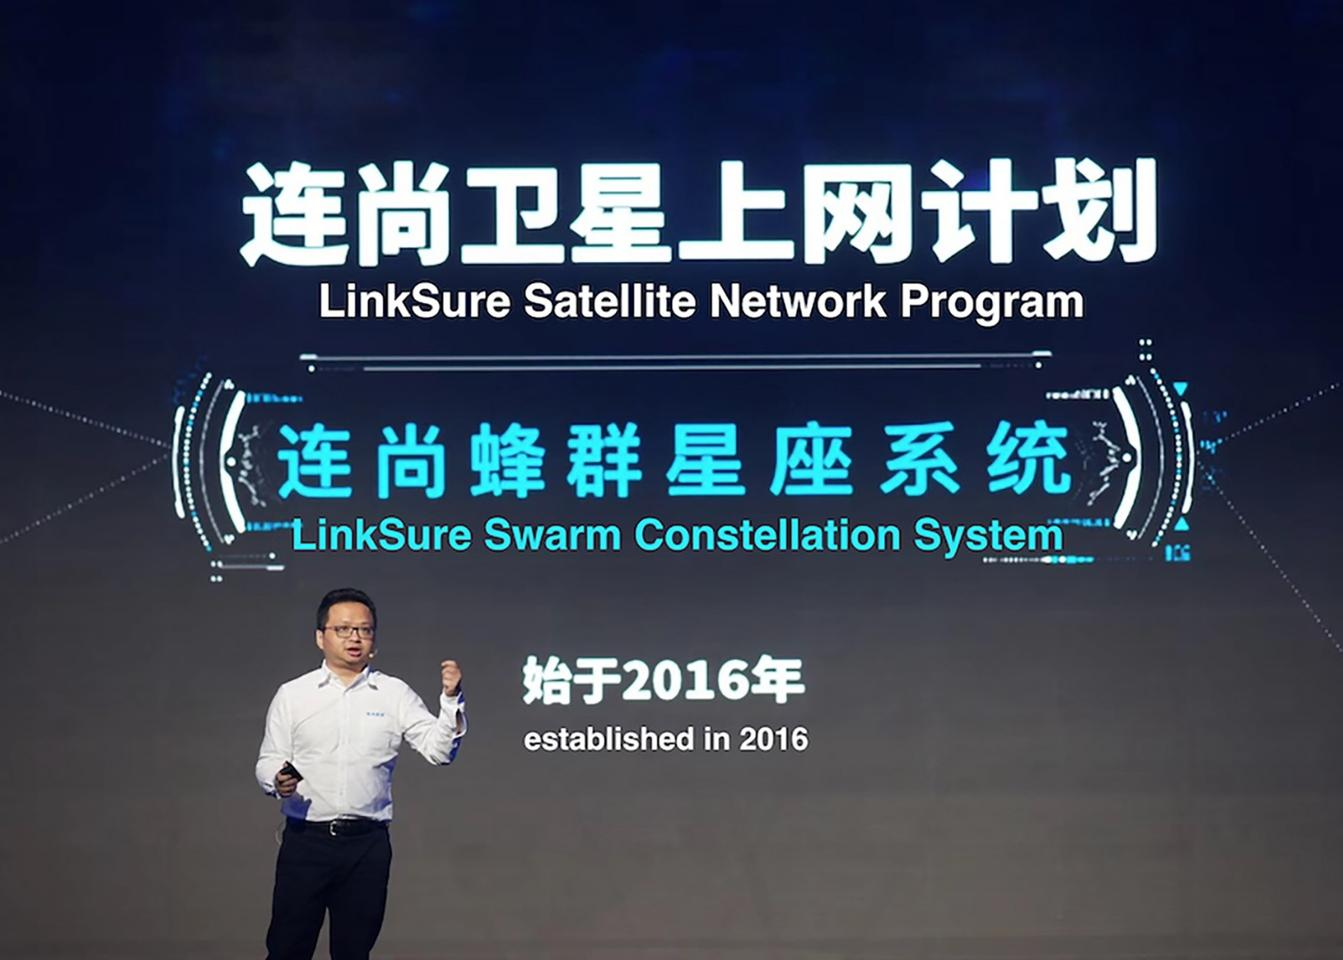 LinkSure is building a satellite network to provide global